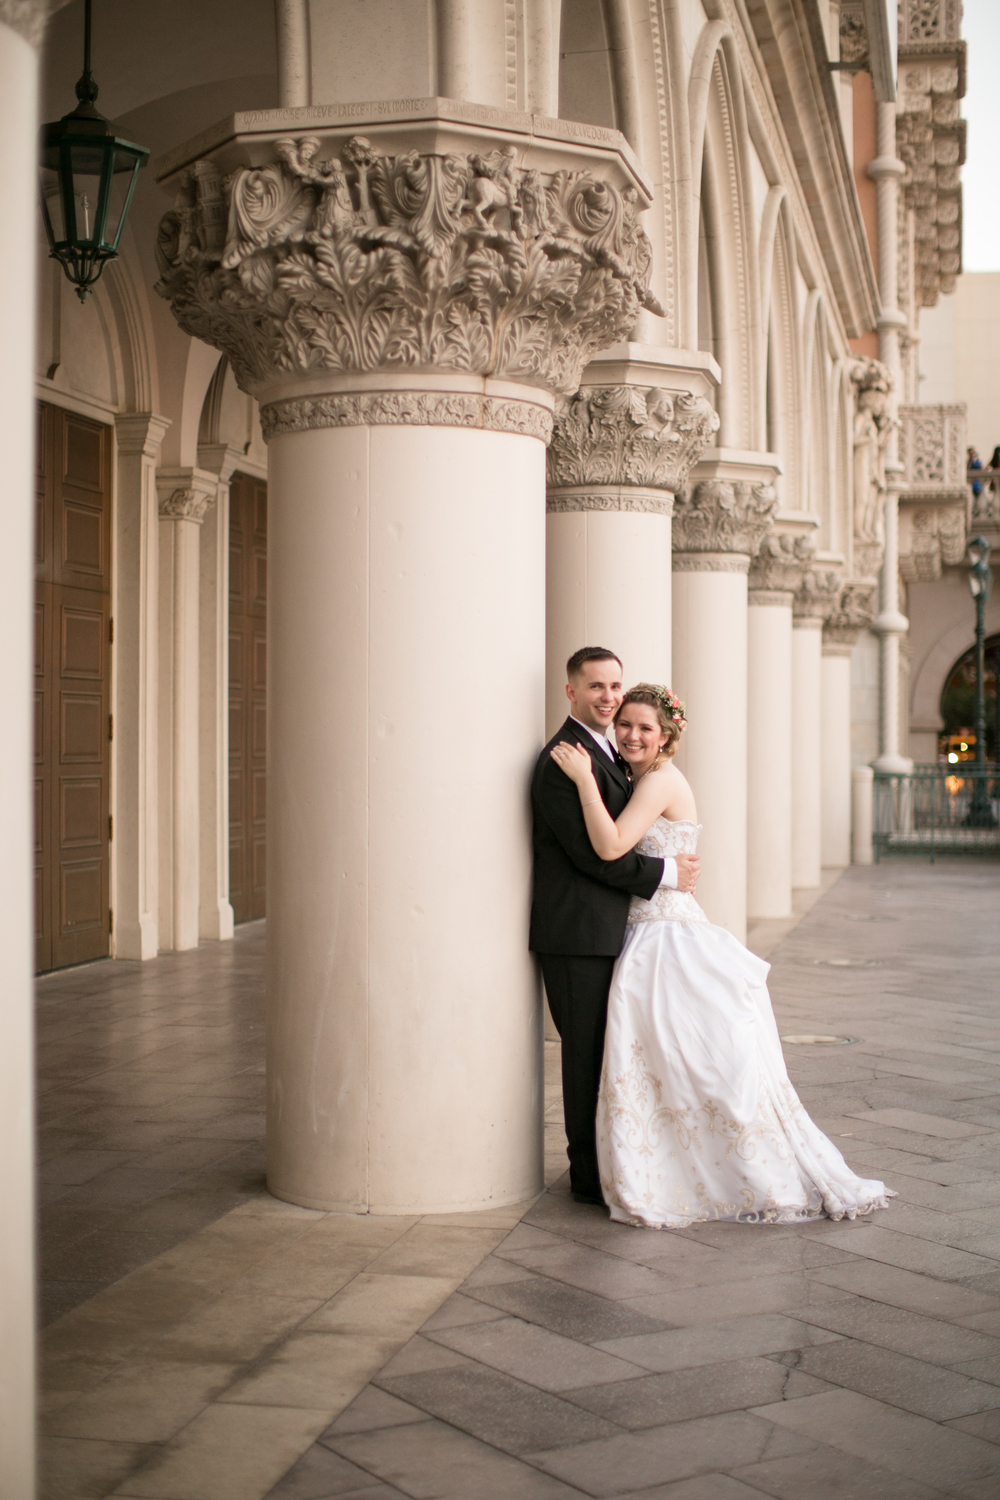 The bride and groom in front of The Venetian.   Las Vegas Wedding Planner Andrea Eppolito  |  Wedding at The Venetian Las Vegas  |  Florals and Decor by Naakiti Floral  |  Photos by Meg Ruth